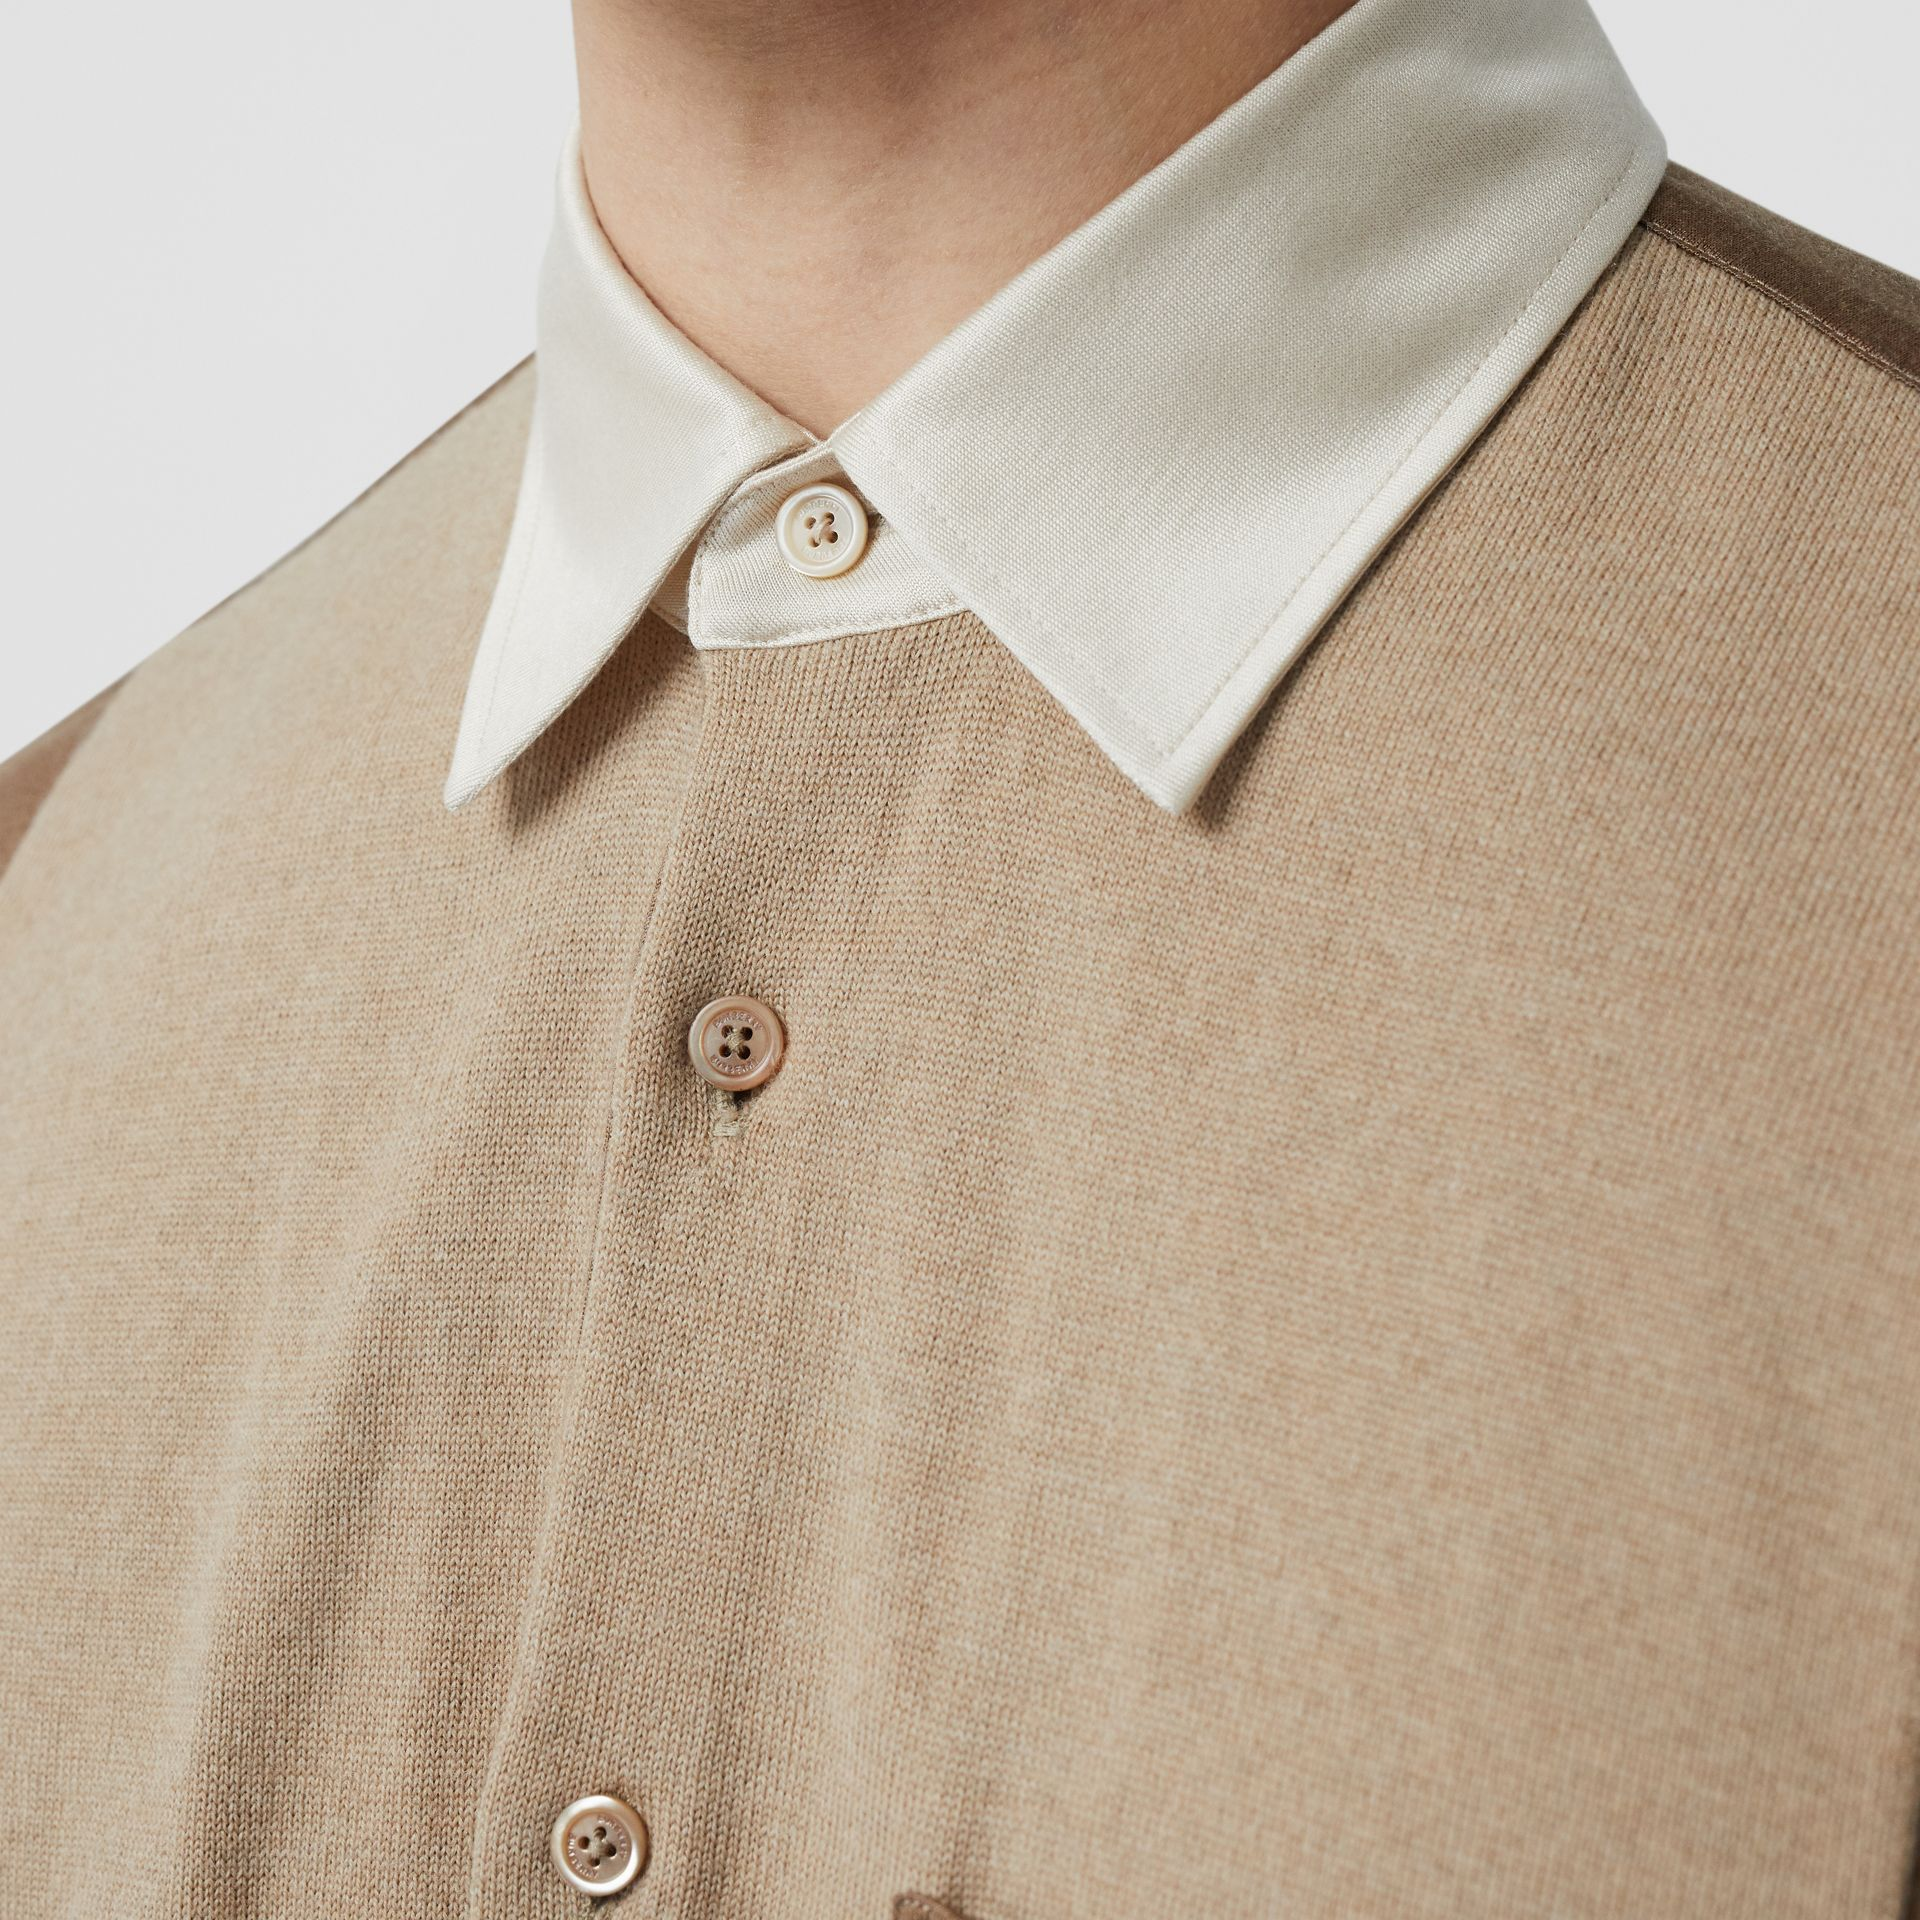 Classic Fit Panelled Silk and Merino Wool Shirt in Warm Camel - Men | Burberry Hong Kong S.A.R - gallery image 1